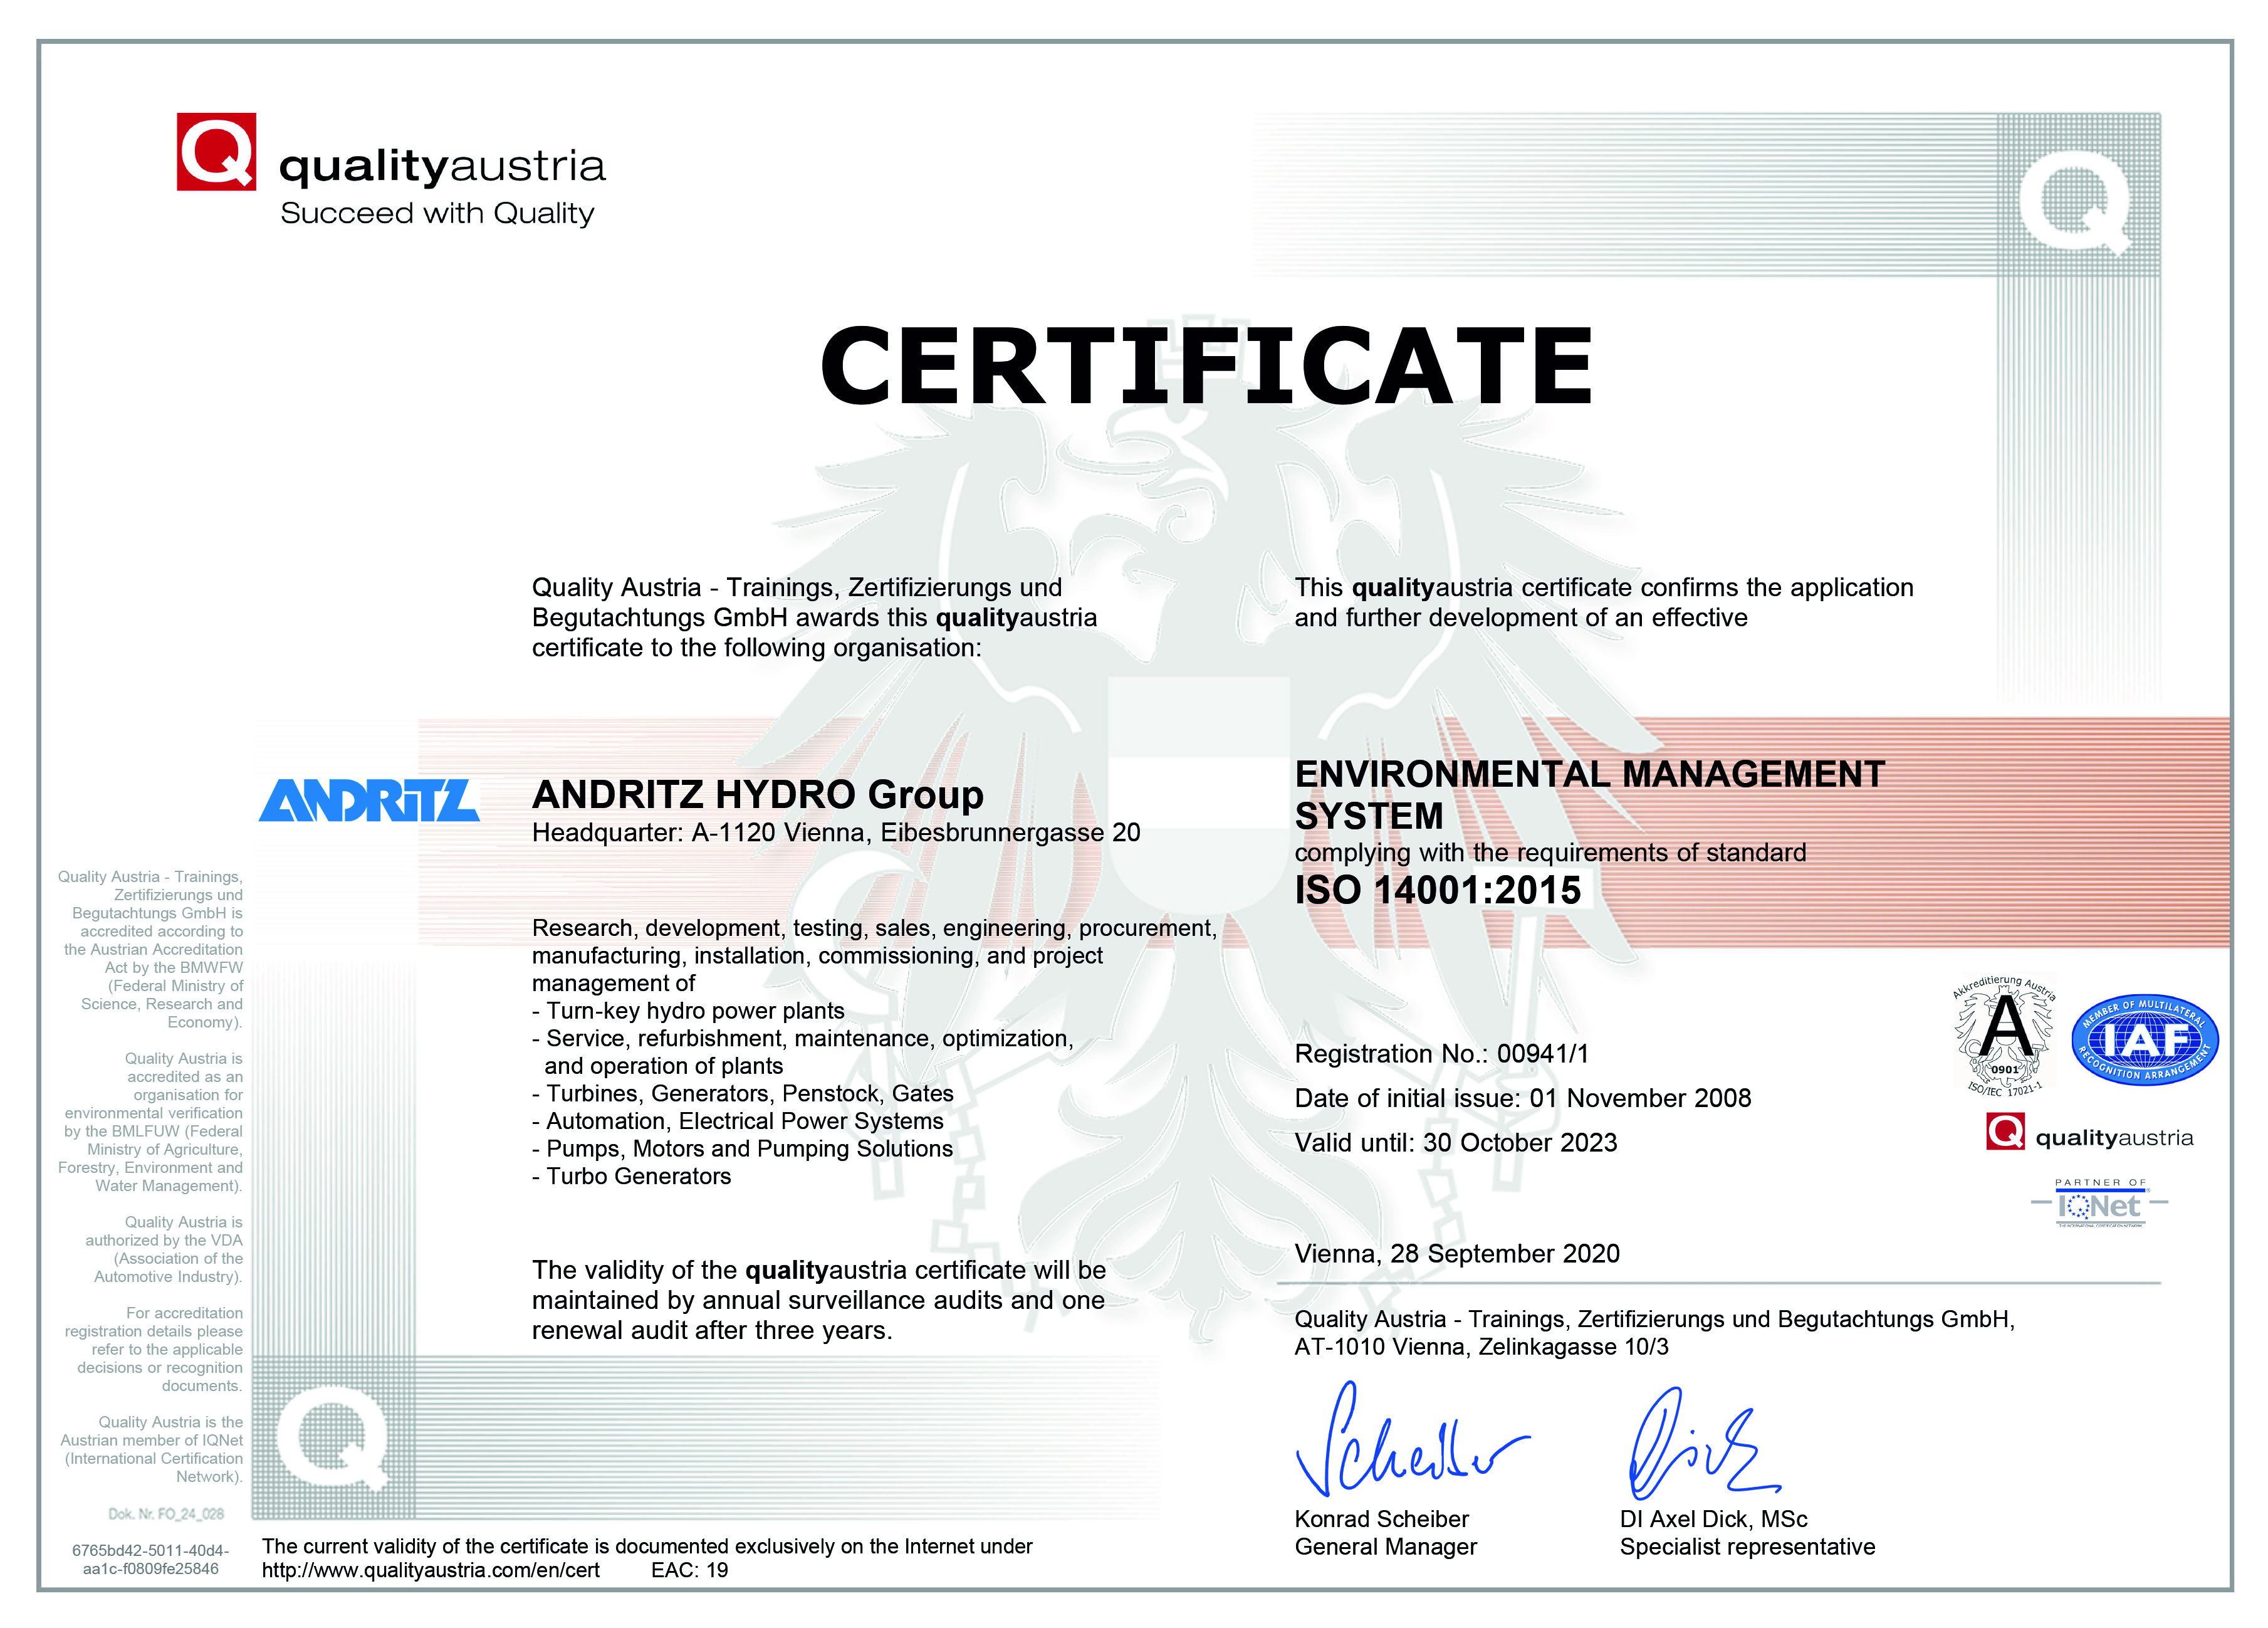 ANDRITZ HYDRO Group ISO 14001 Certificate